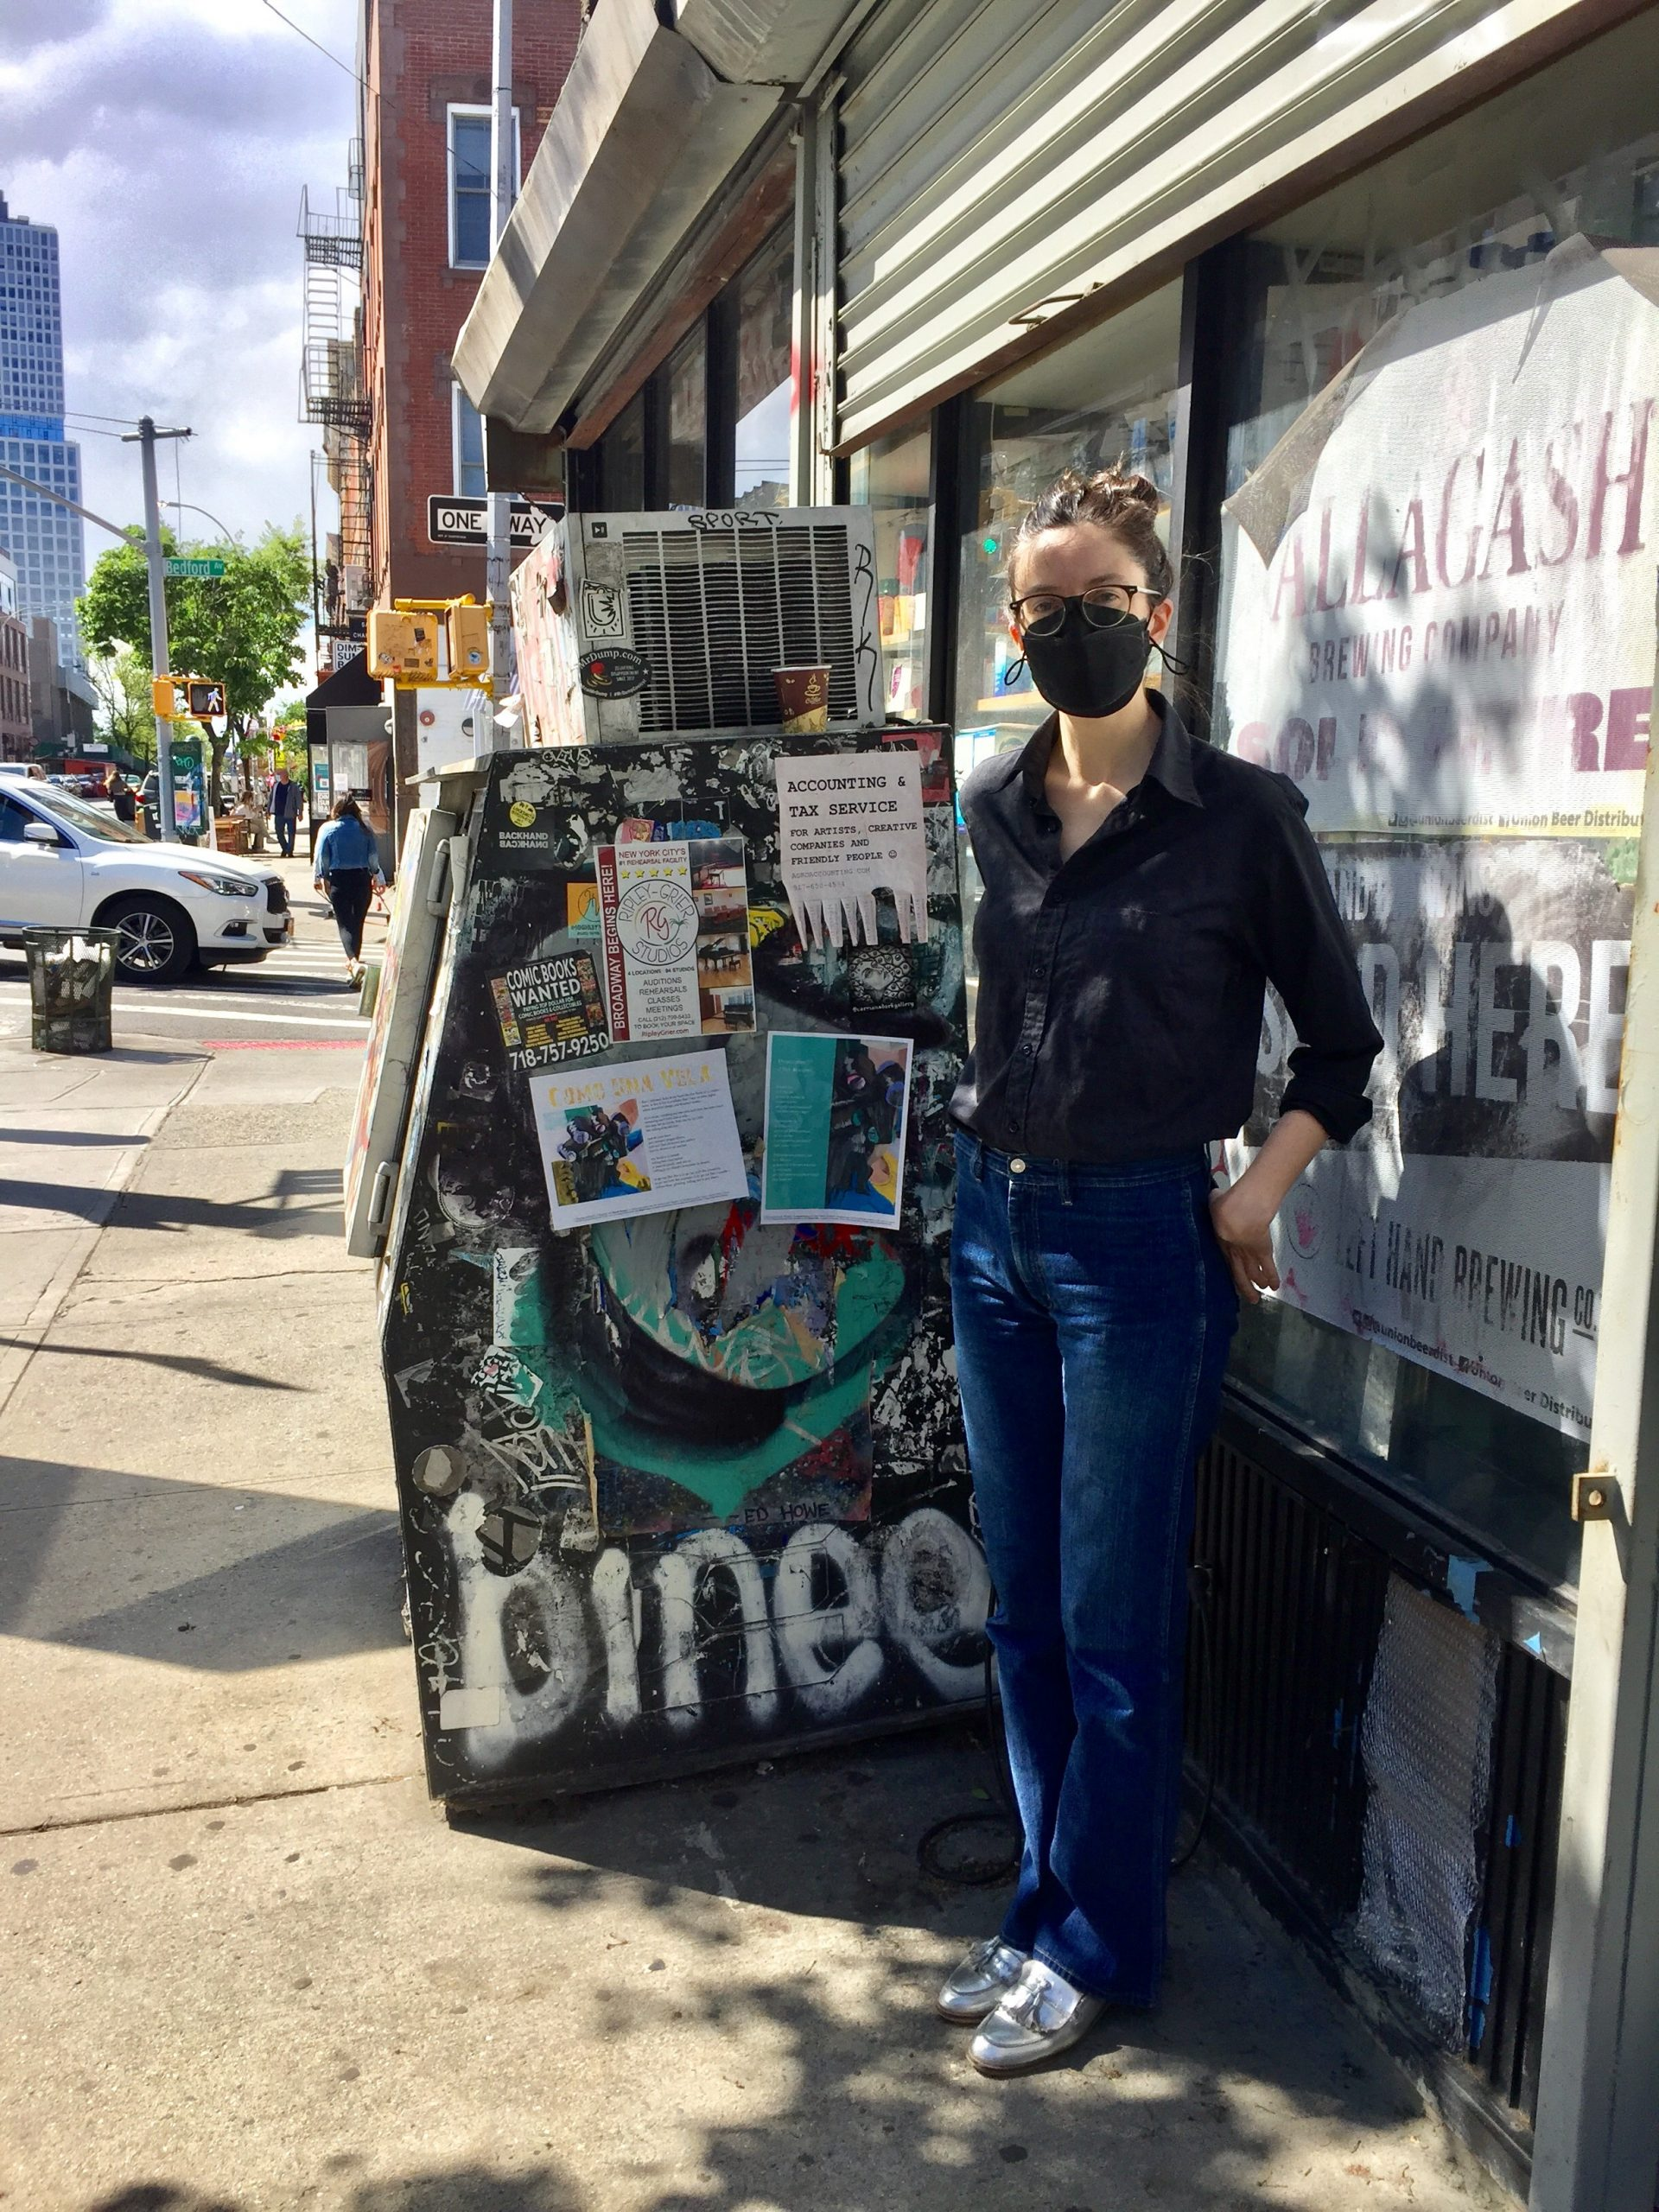 Meghan Keane standing right of her two broadsides pasted on a freezer on a sidewalk..